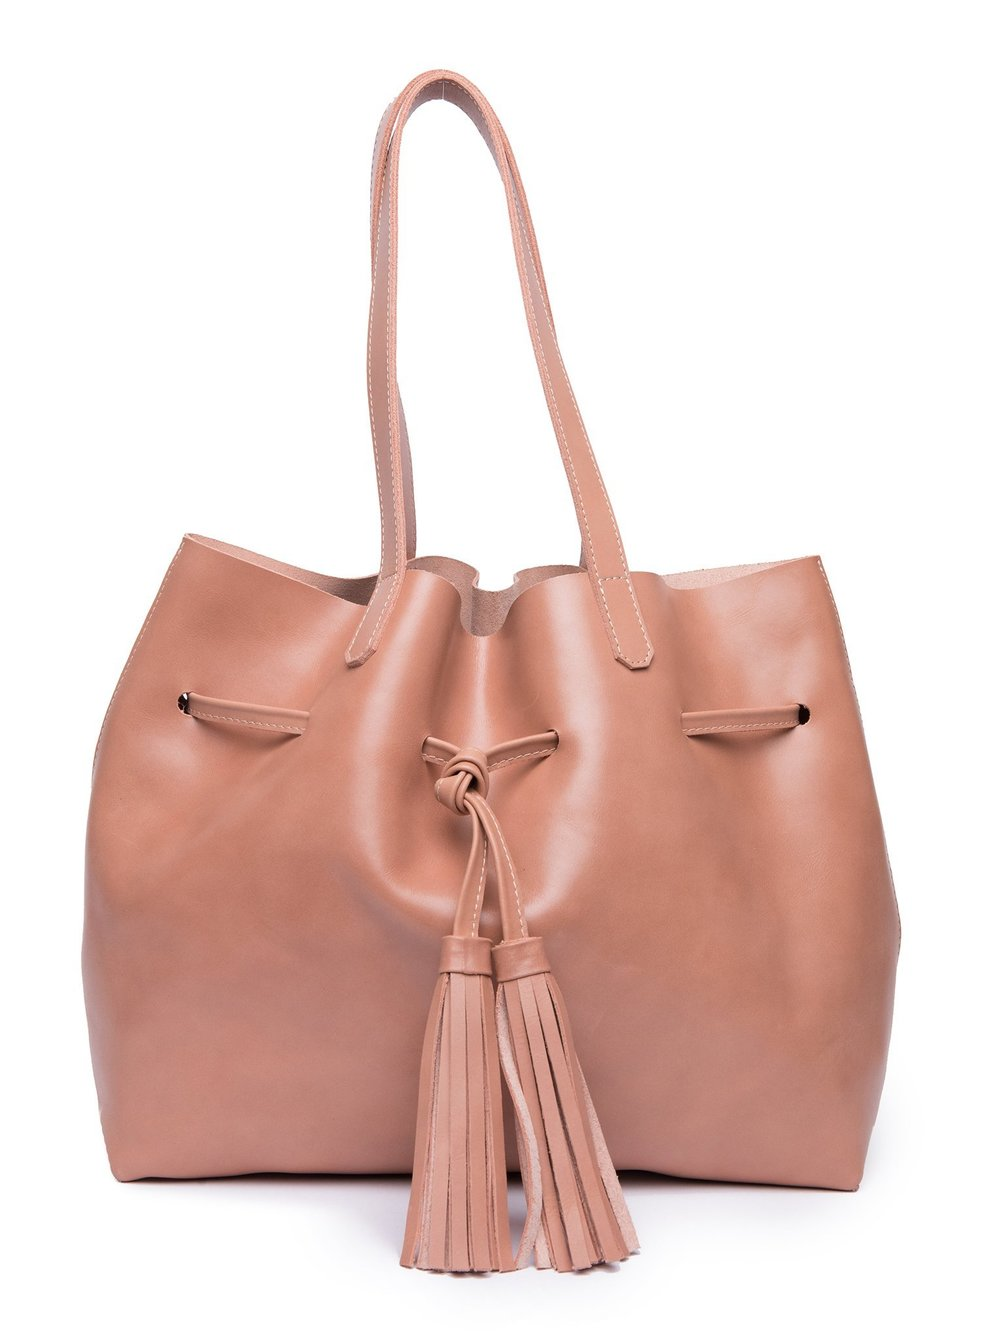 Tassel_Shopper_Bag_Dusty_Rose_2048x2048.jpg